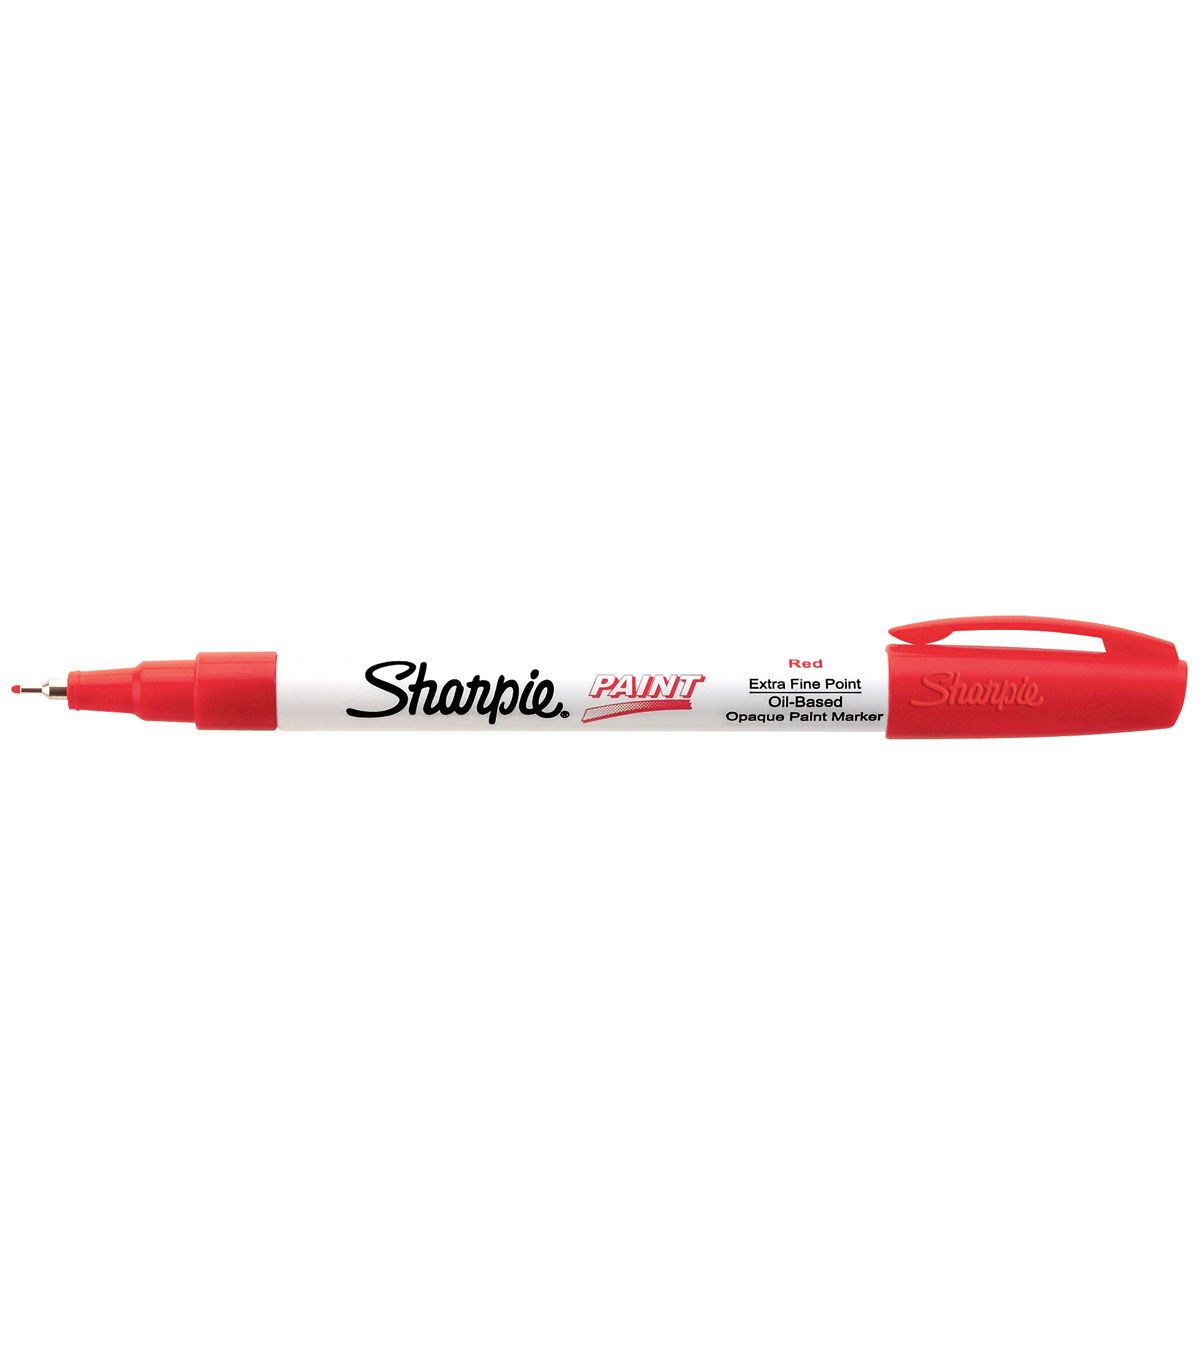 Sharpie Extra Fine Point Oil Based Paint Marker Silver